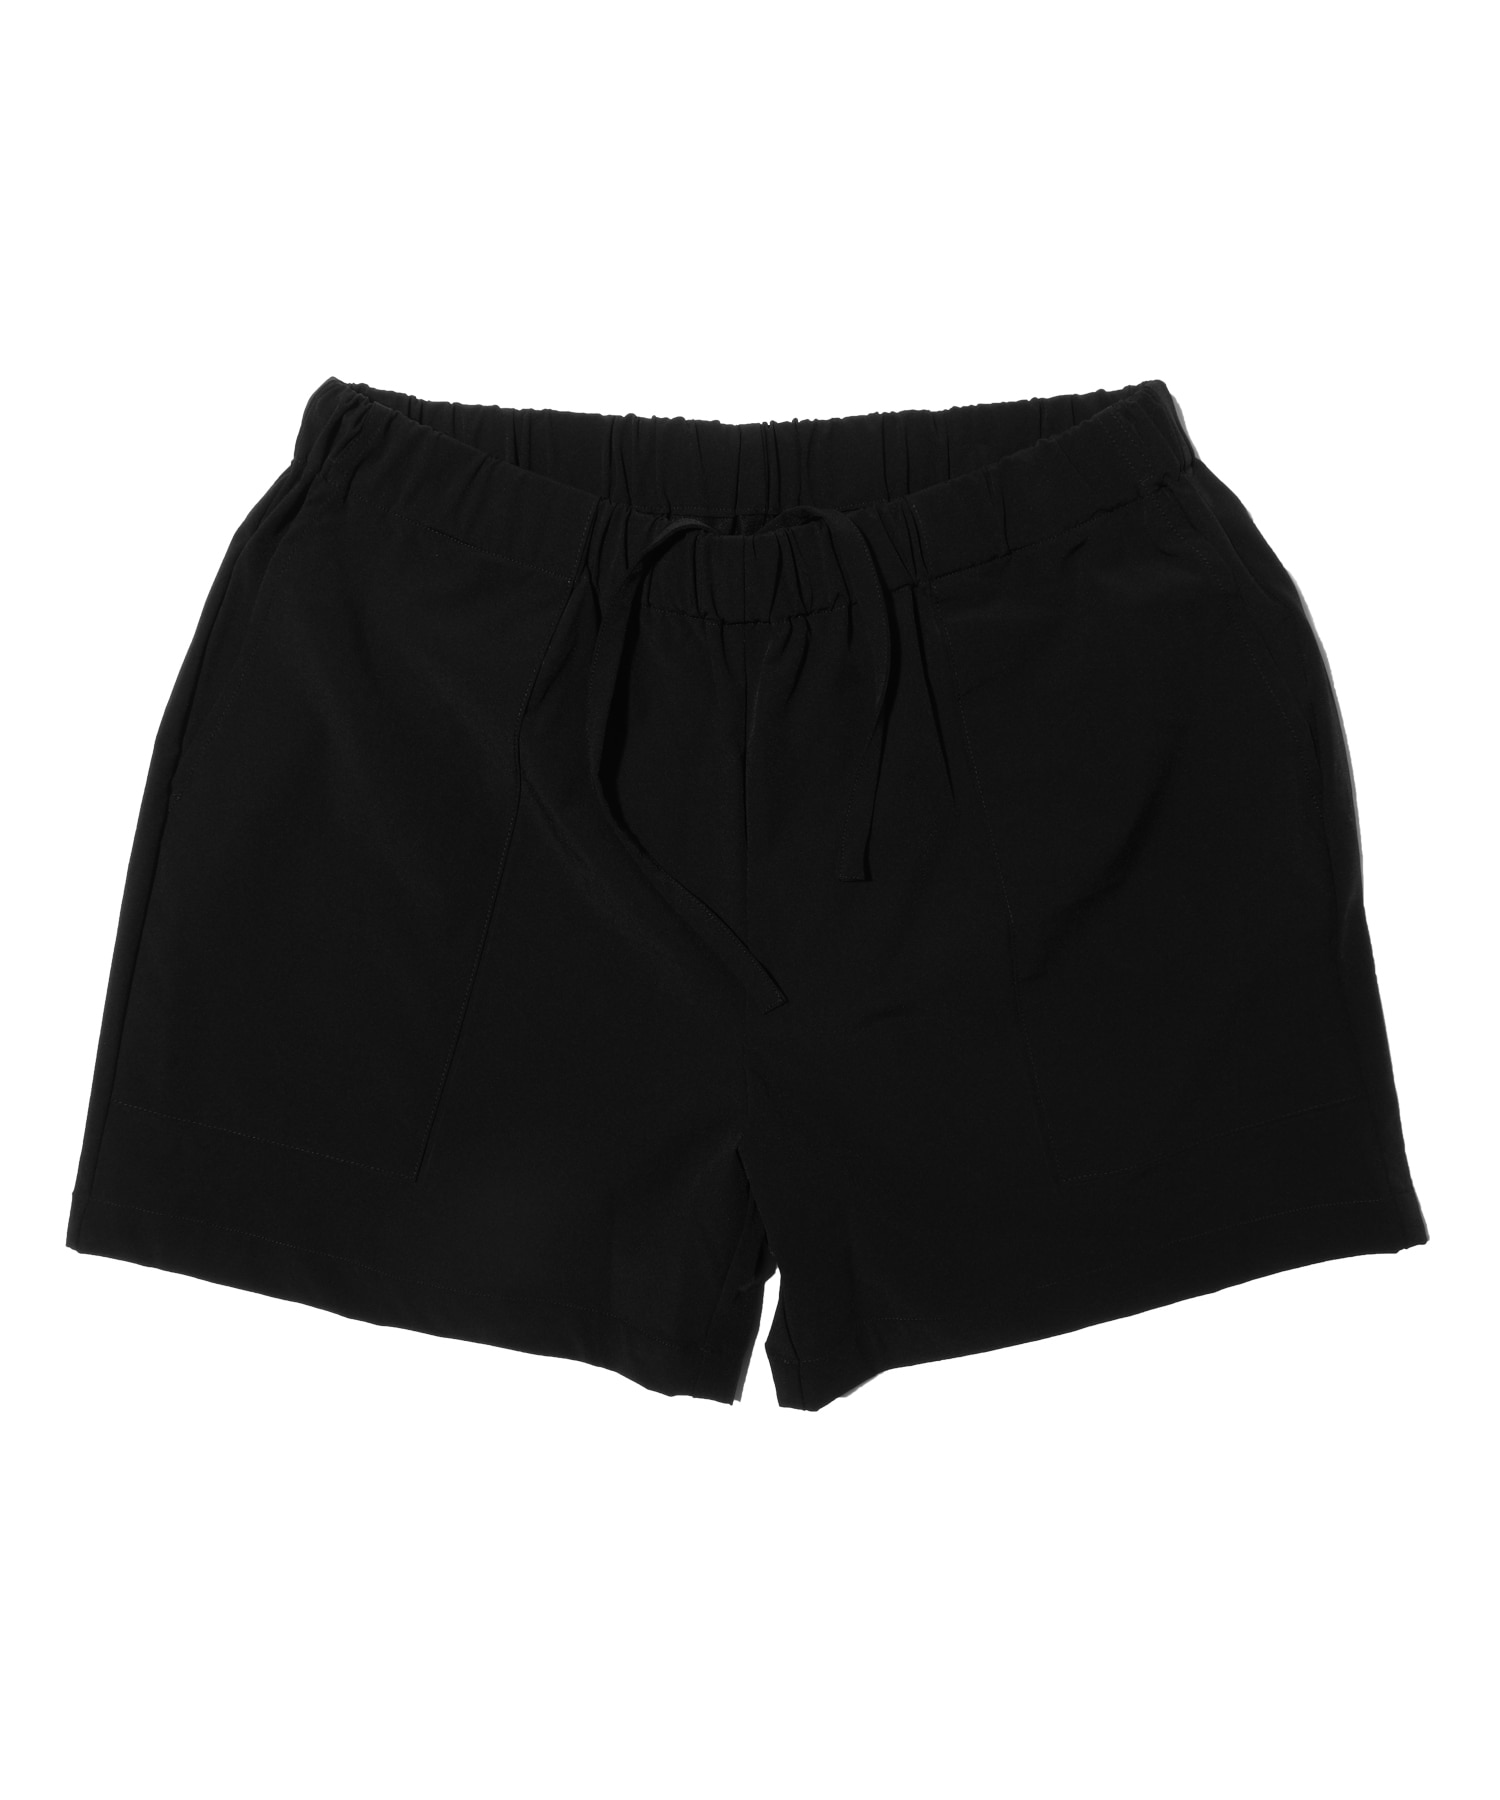 해버대셔리 WATERPROOF BEACH SHORTS_Black